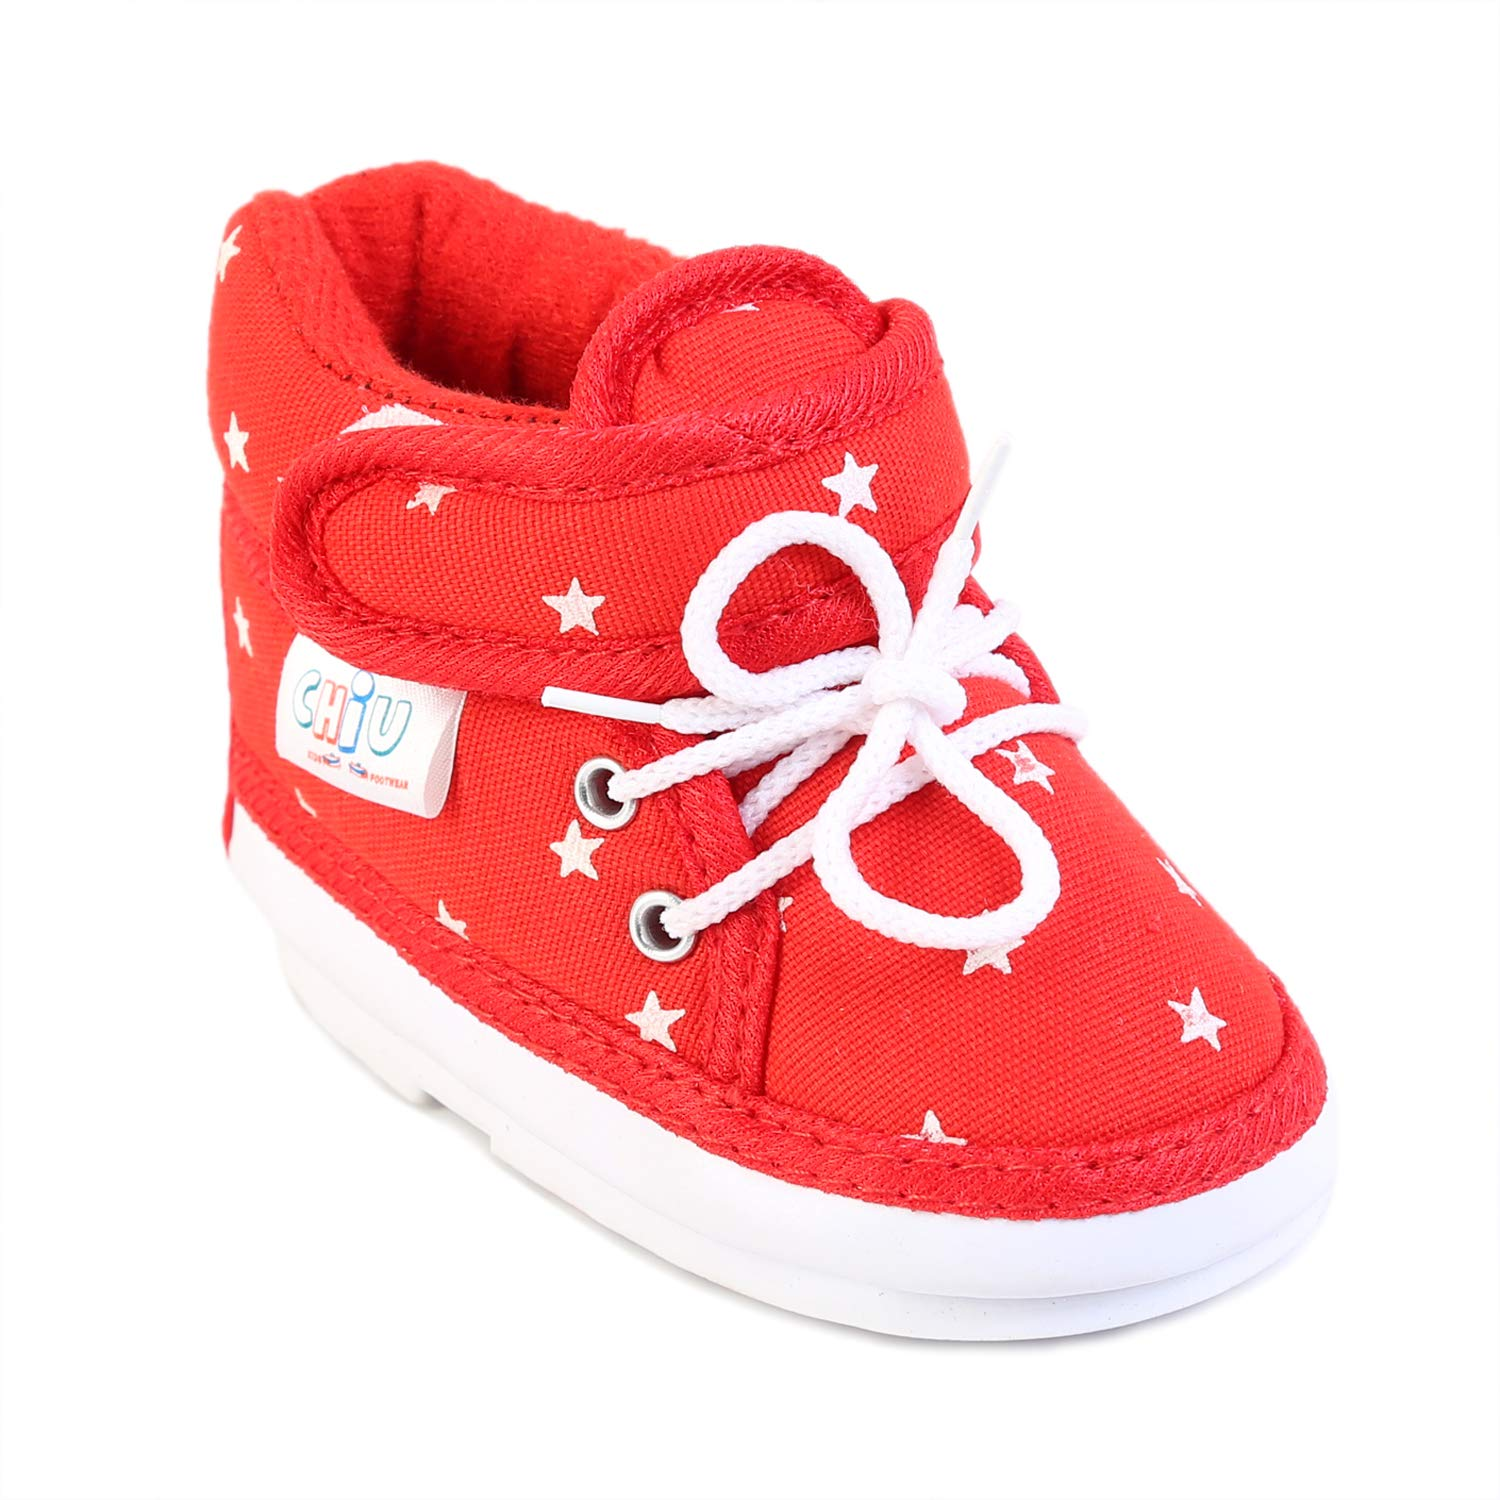 CHIU Musical Star Pattern Red Shoes for